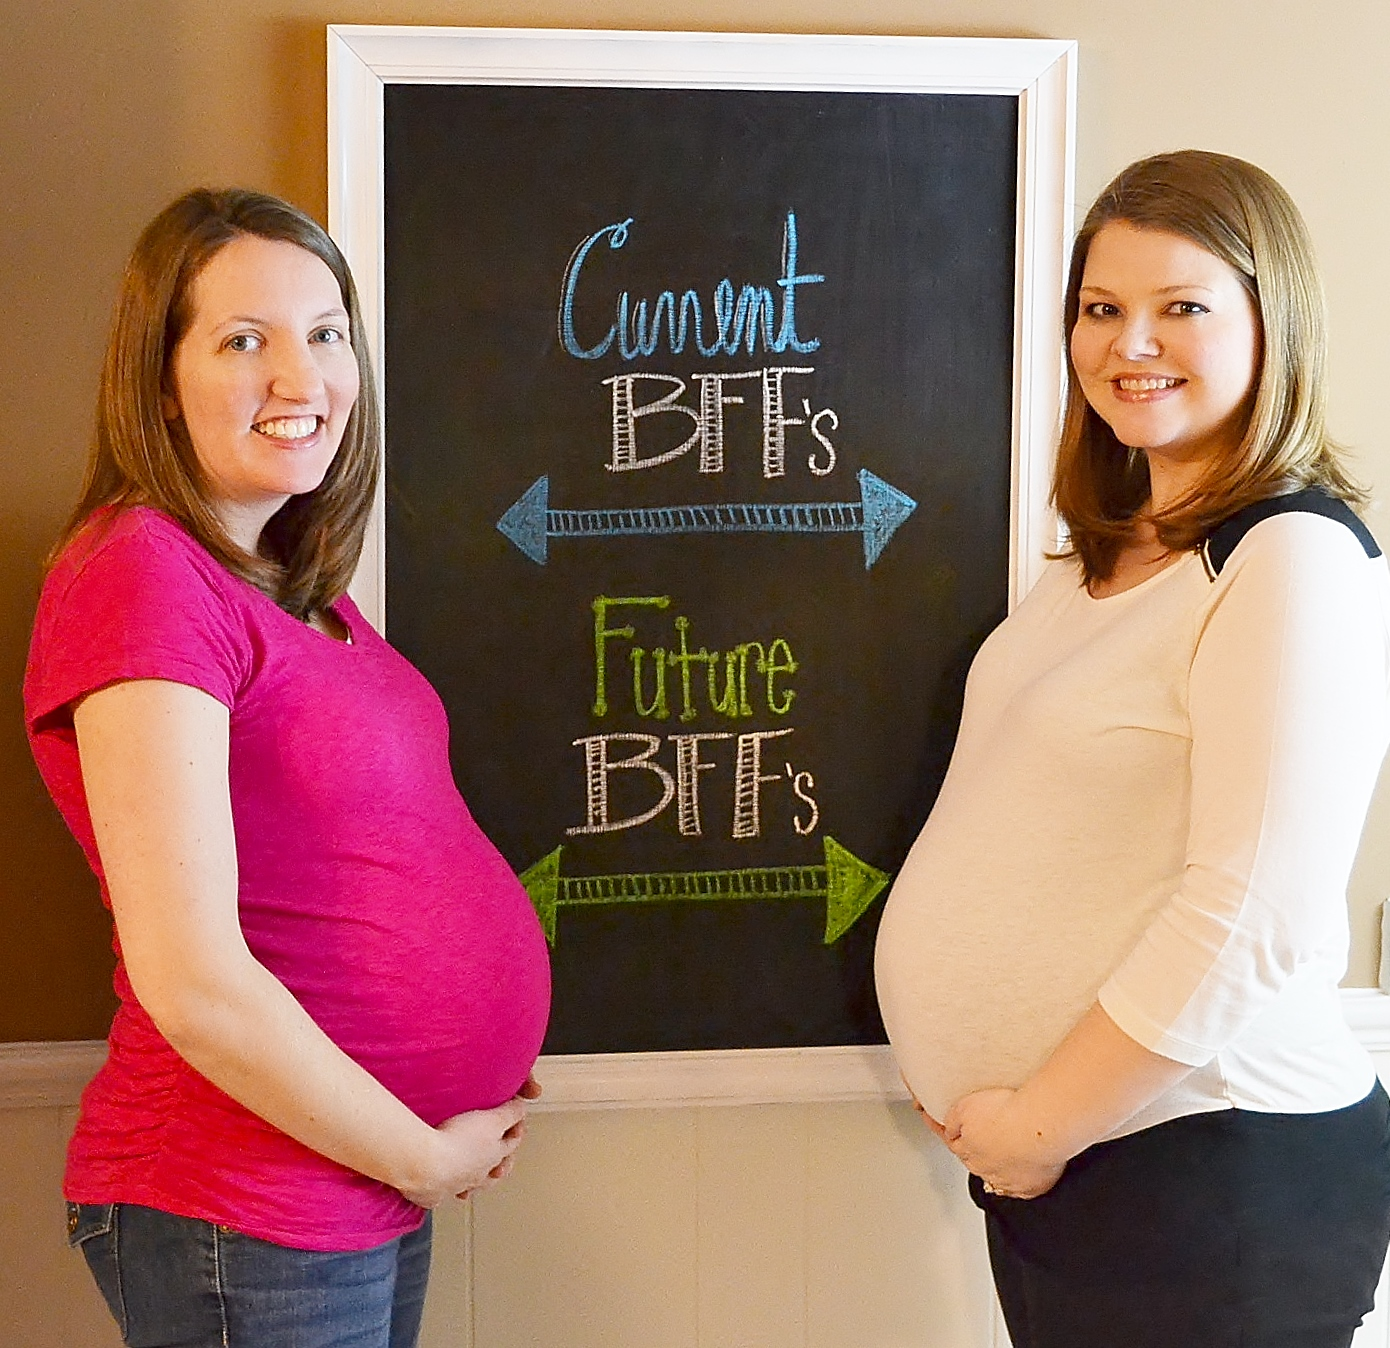 Pregnancy Chalkboard: 27 Weeks and Future BFF's